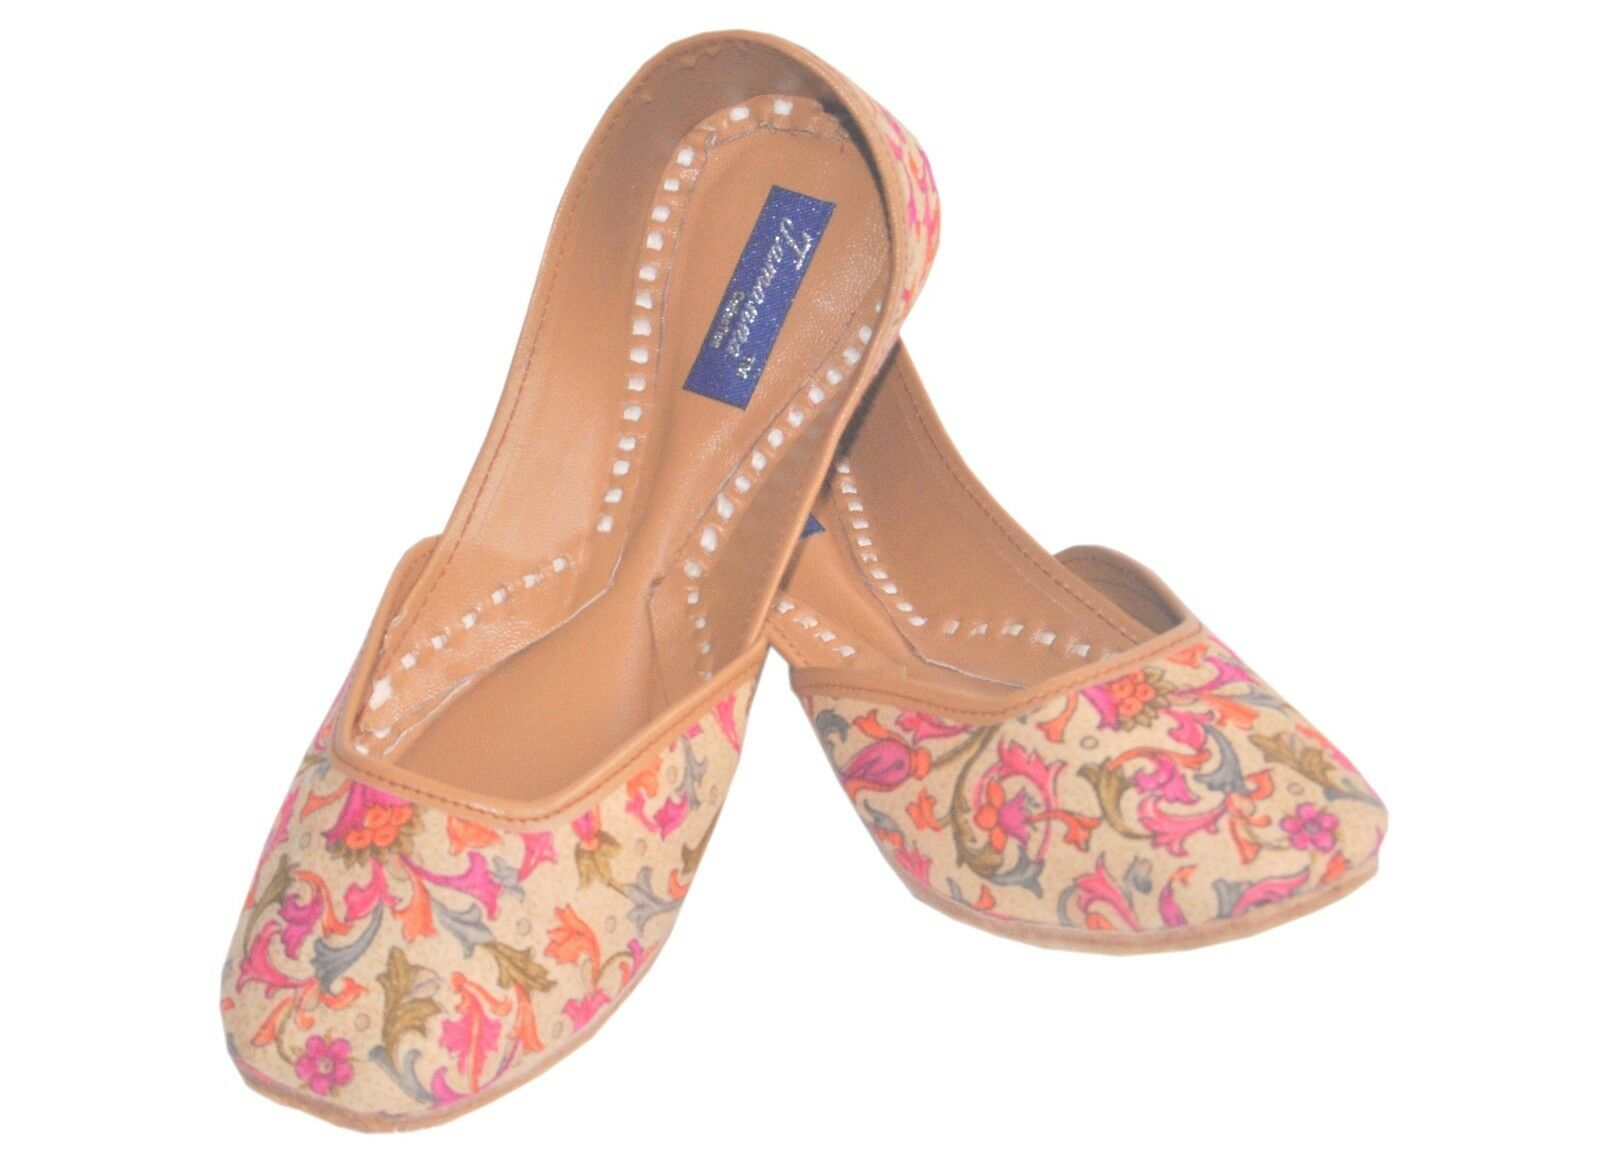 Indian Handcrafted Rajsthani Leather Mojari In Mutli Size Color For Women US Size Mutli 5 26f3e5